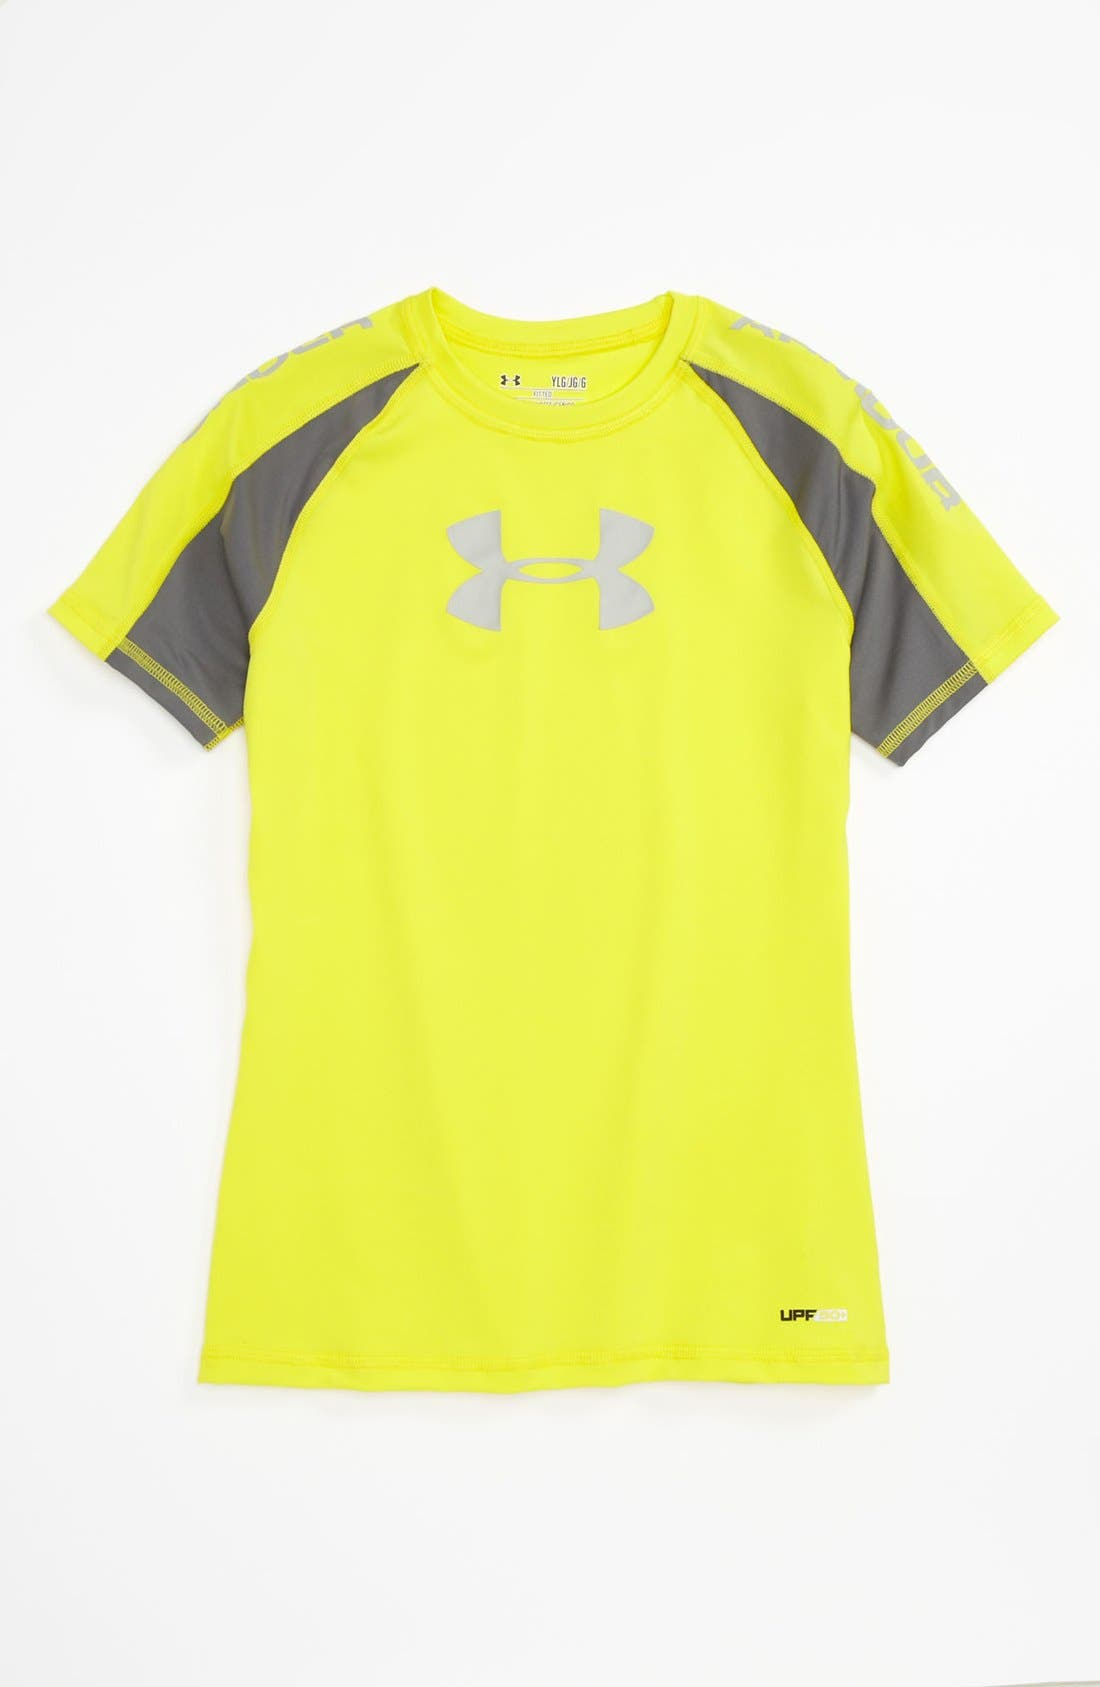 Main Image - Under Armour 'Ripping' T-Shirt (Big Boys)